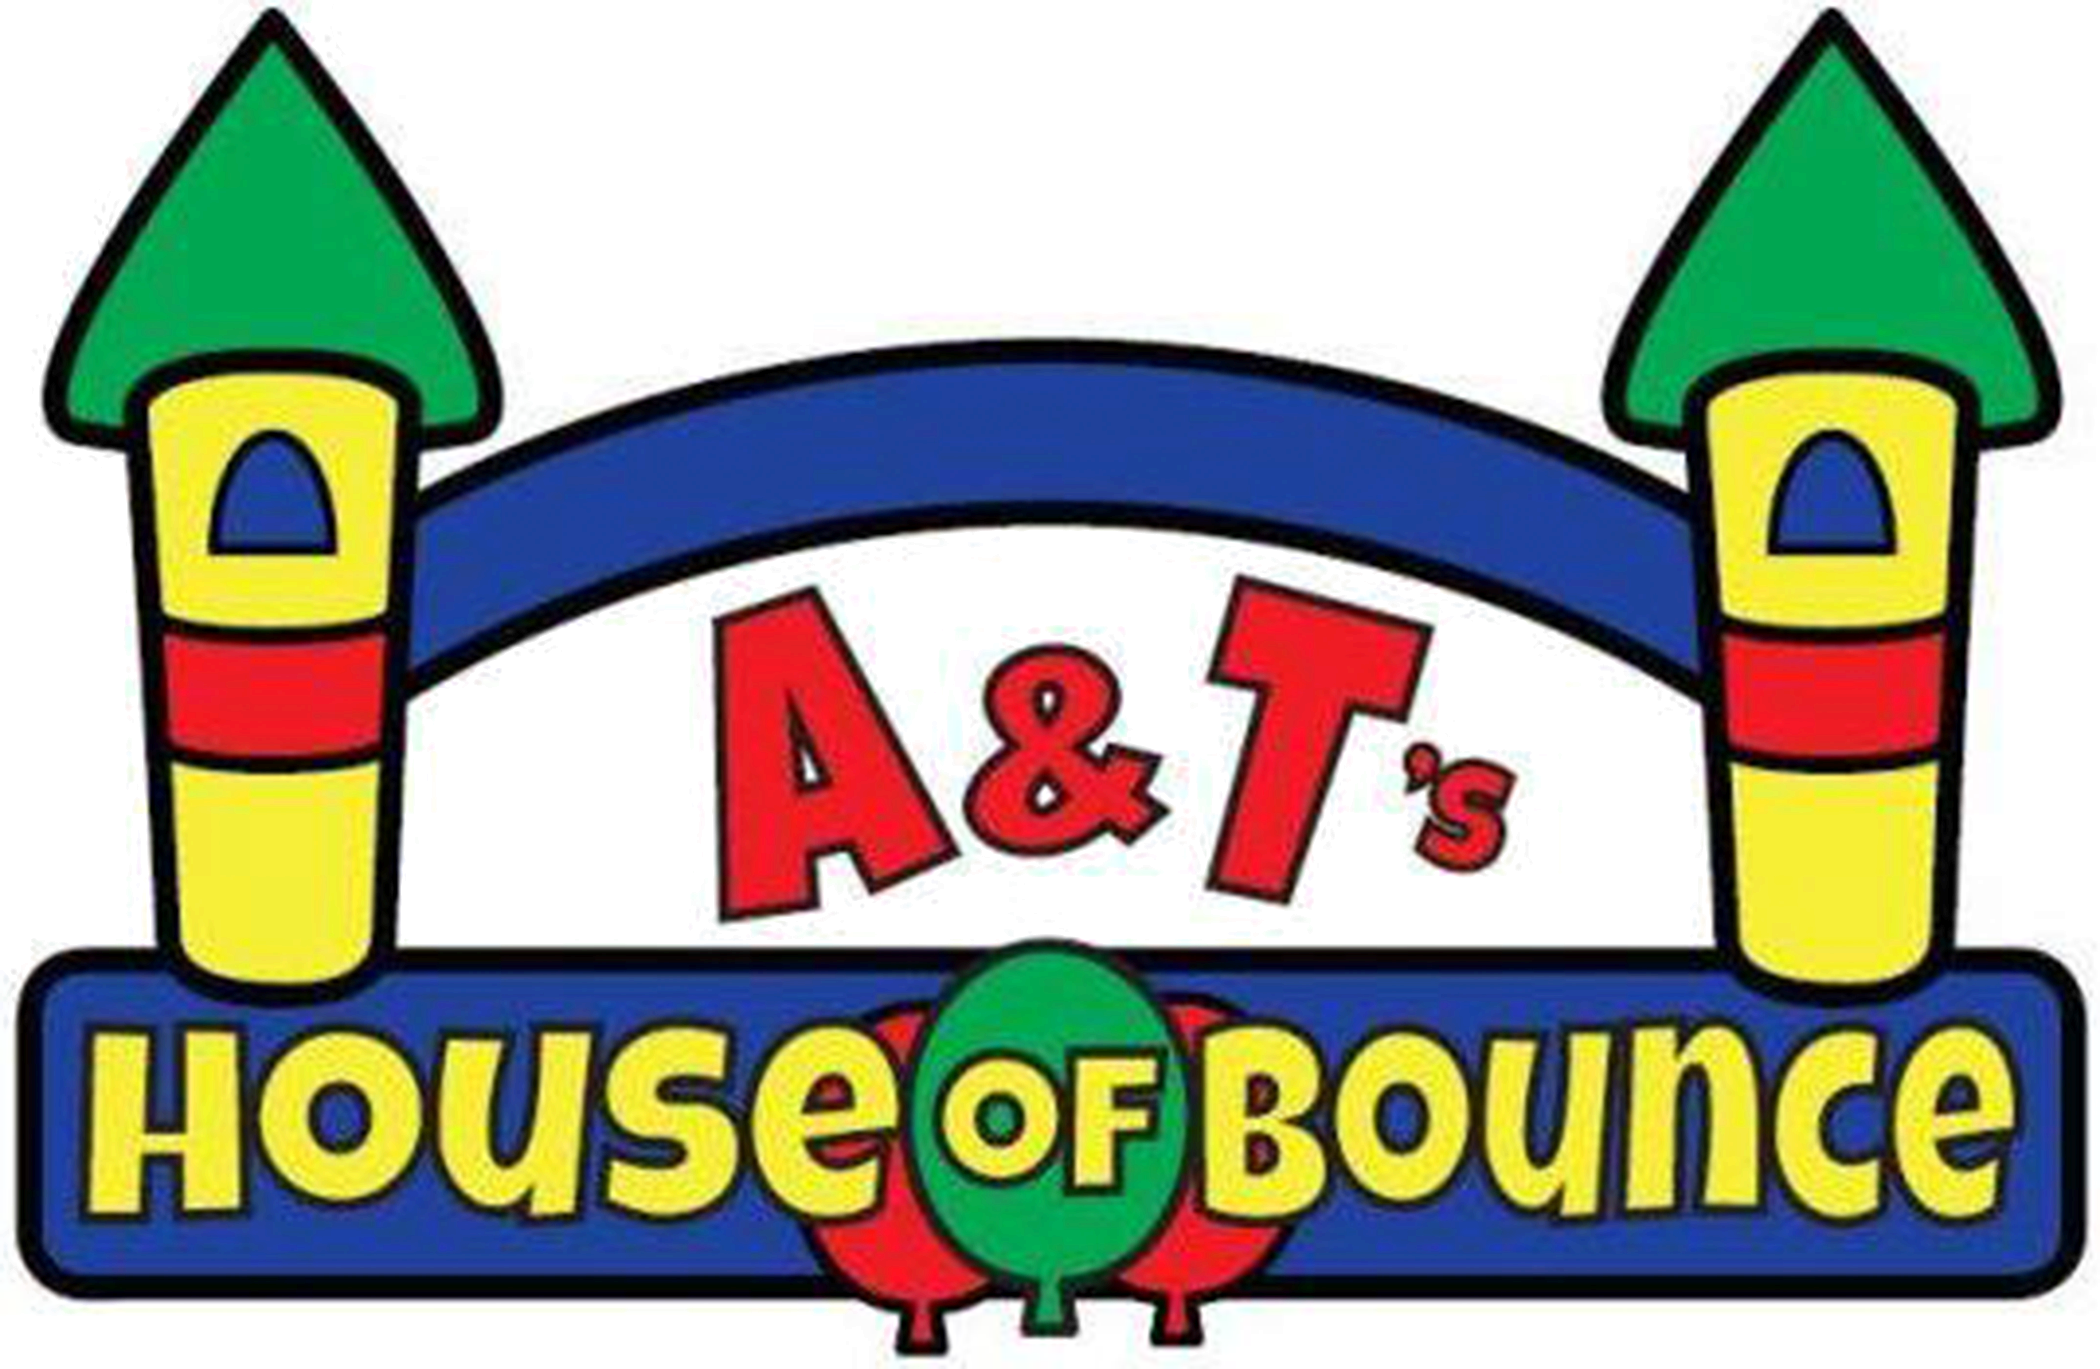 Free bounce house clipart picture library Party Rentals & Bounce Houses   A&T's House of Bounce picture library